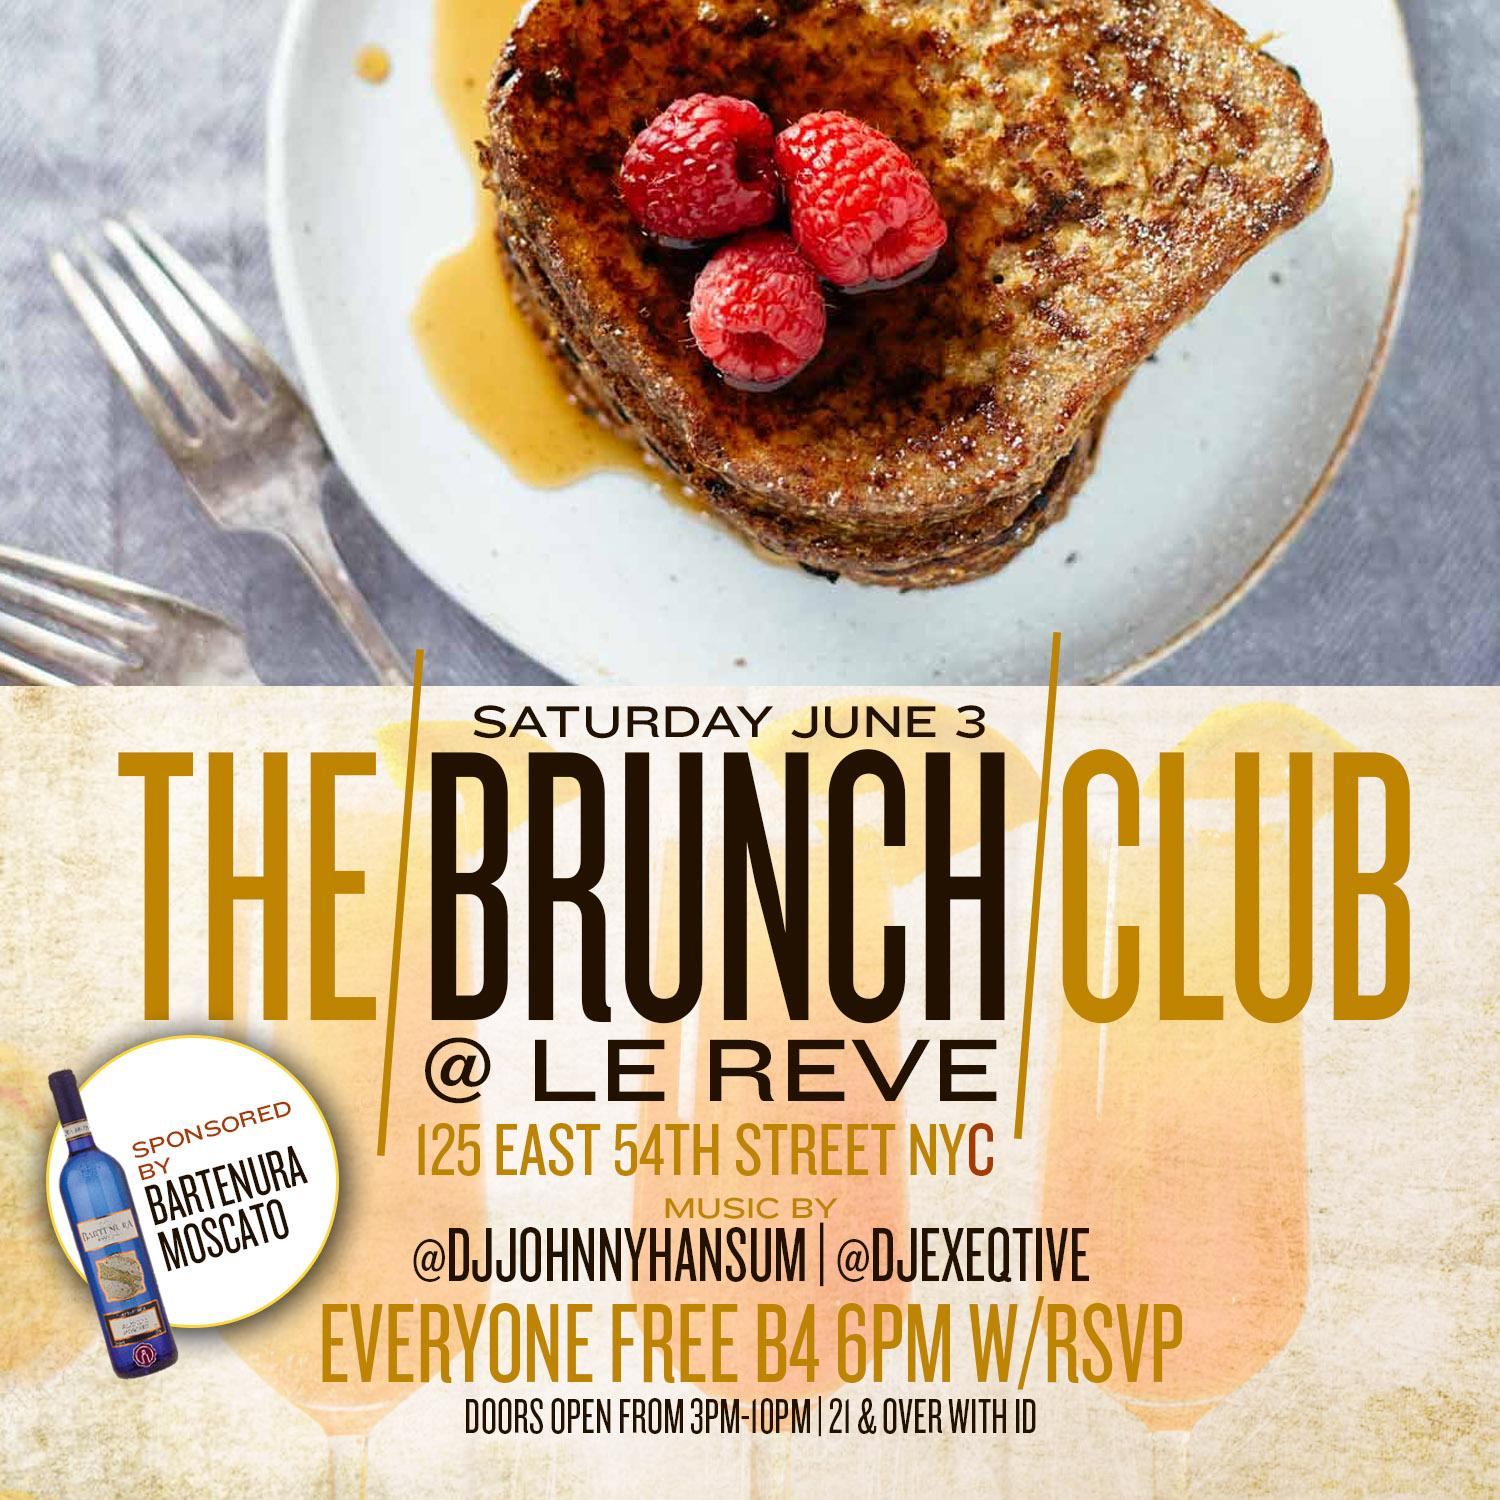 CIROC LE REVE #BRUNCHCLUB BRUNCH/DAY PARTY JU